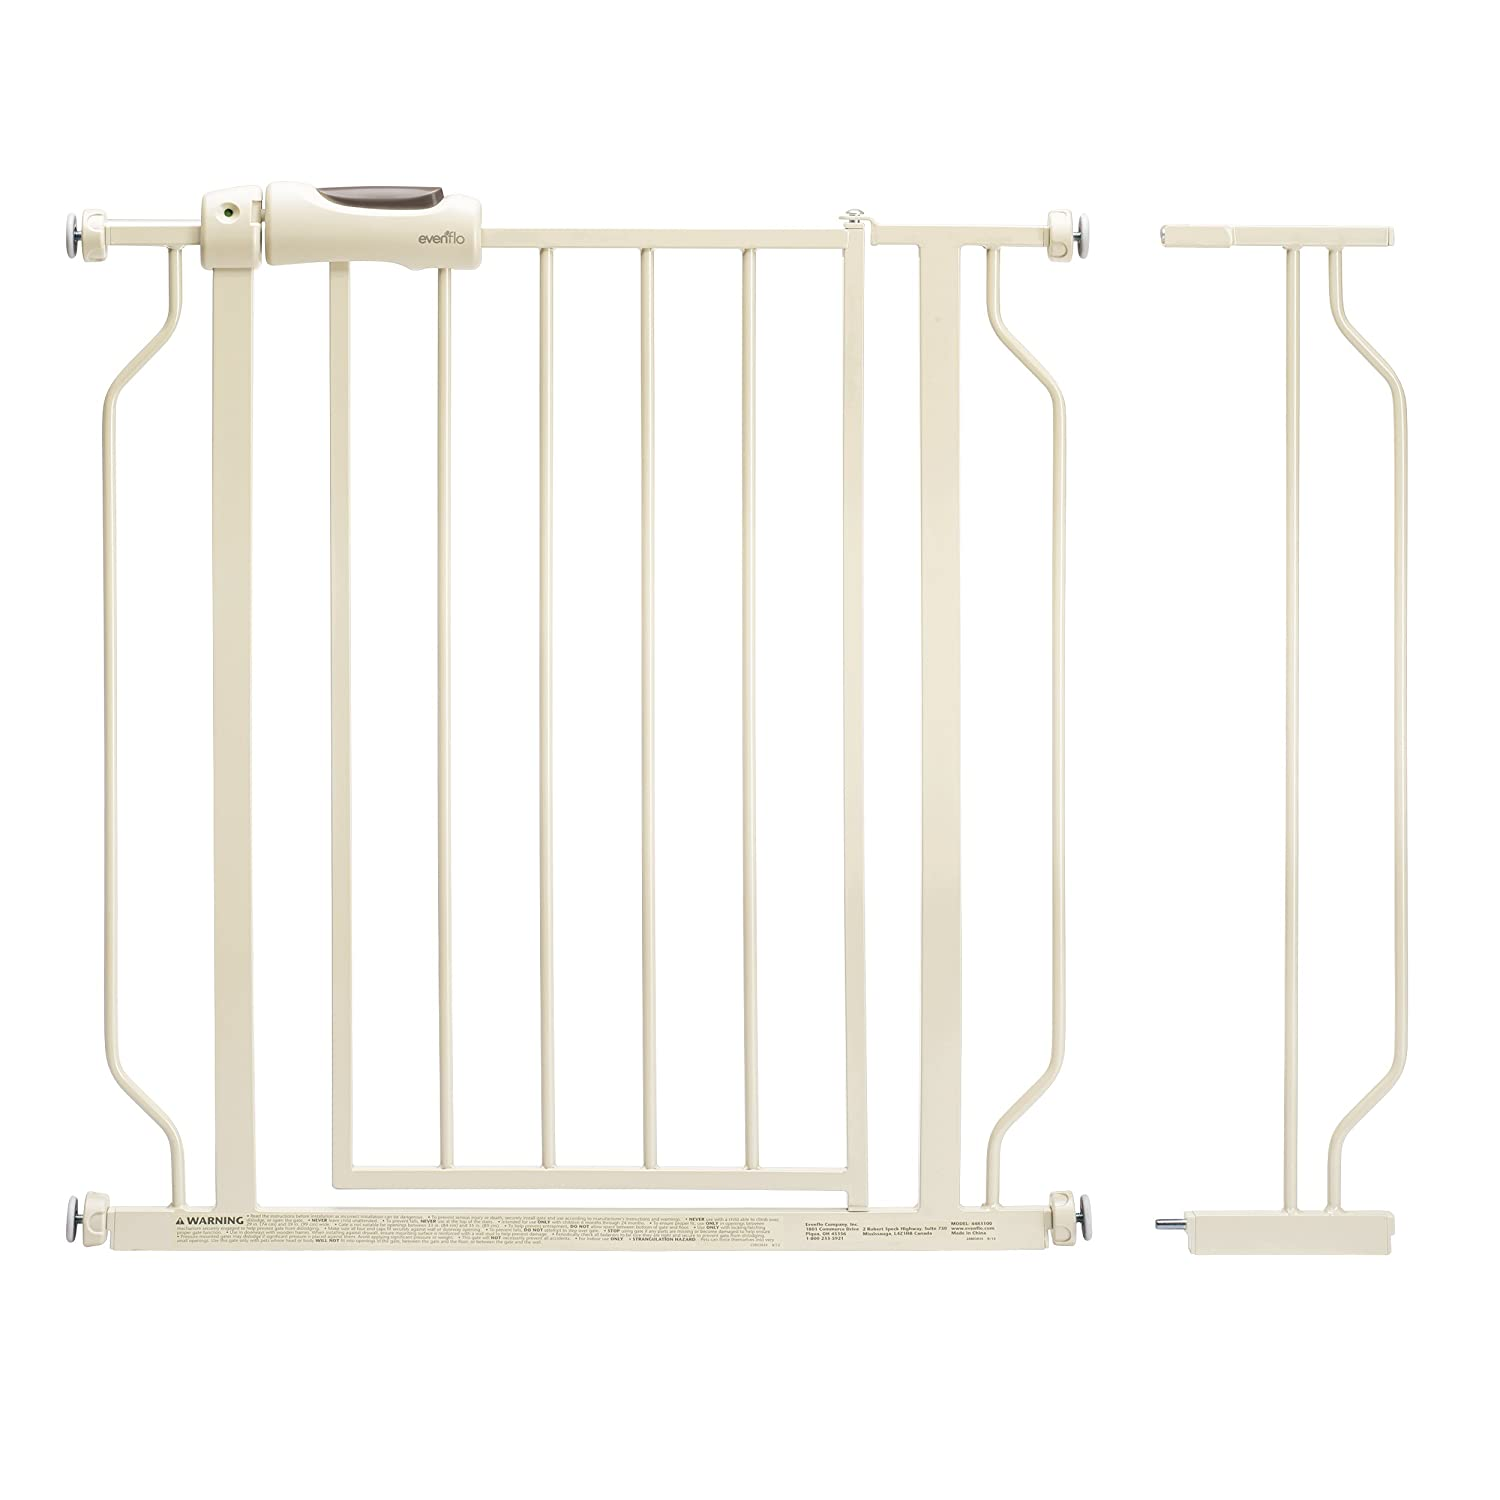 Evenflo Easy Walk Thru Doorway Gate, White